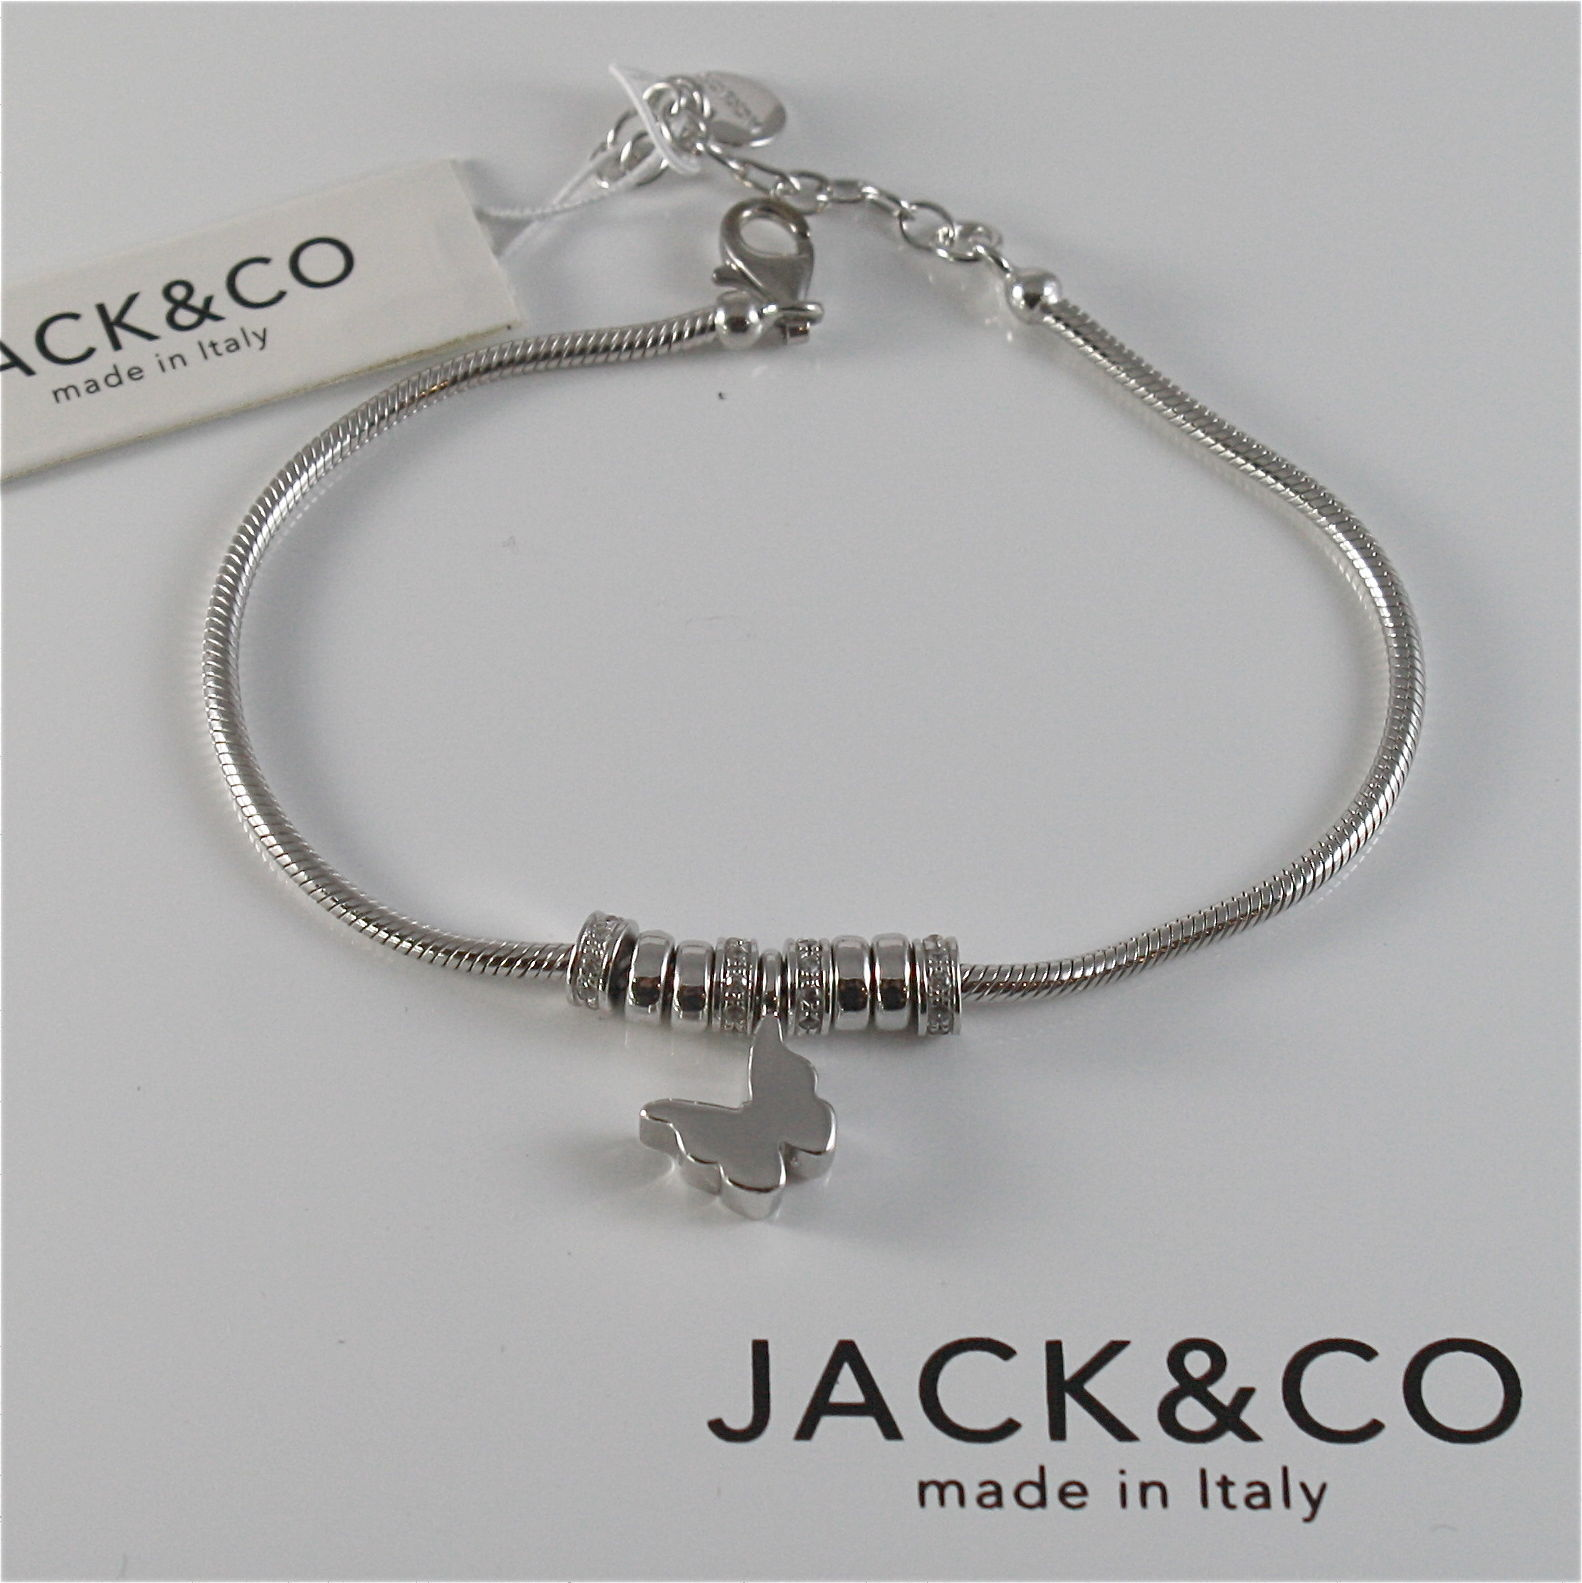 925 RHODIUM SILVER JACK&CO BRACELET WITH LUSTER SHINY BUTTERFLY MADE IN ITALY